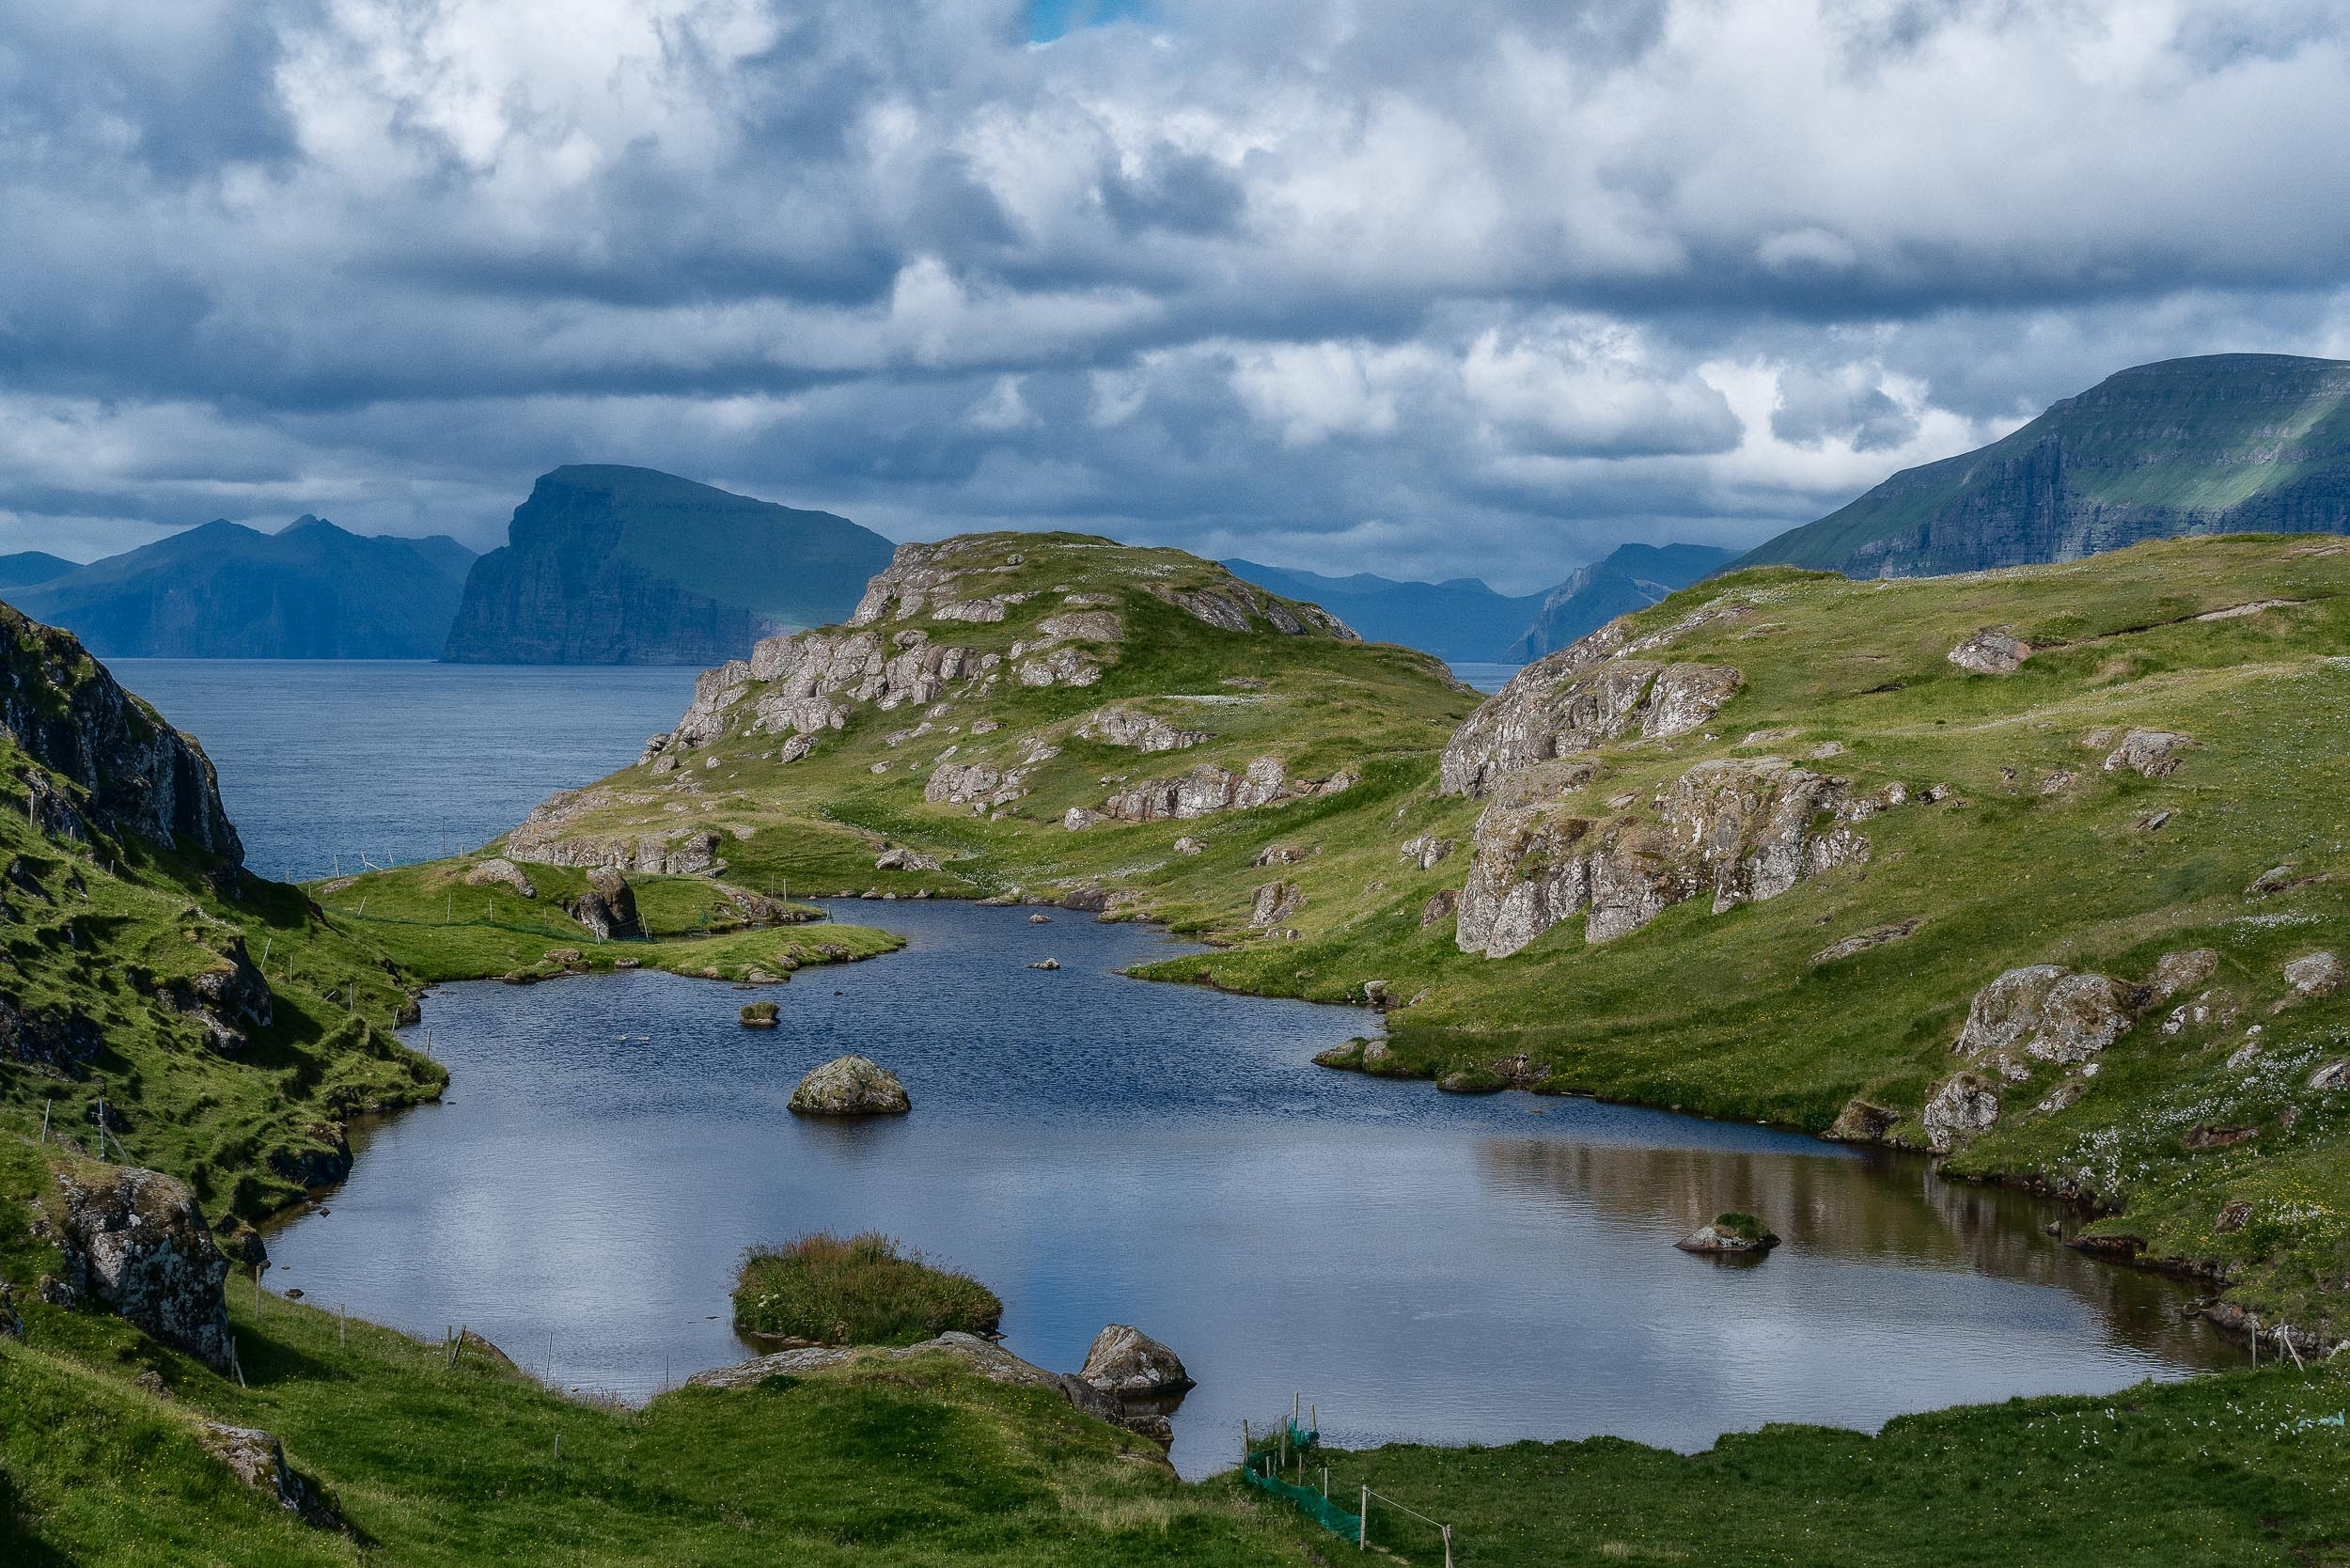 Green rocky terrain and blue waters, underneath a stormy sky, provide  an incredibly beautiful outlook  near the town of  Skopun  on the  island of Sandoy  in the  Faroe Islands .